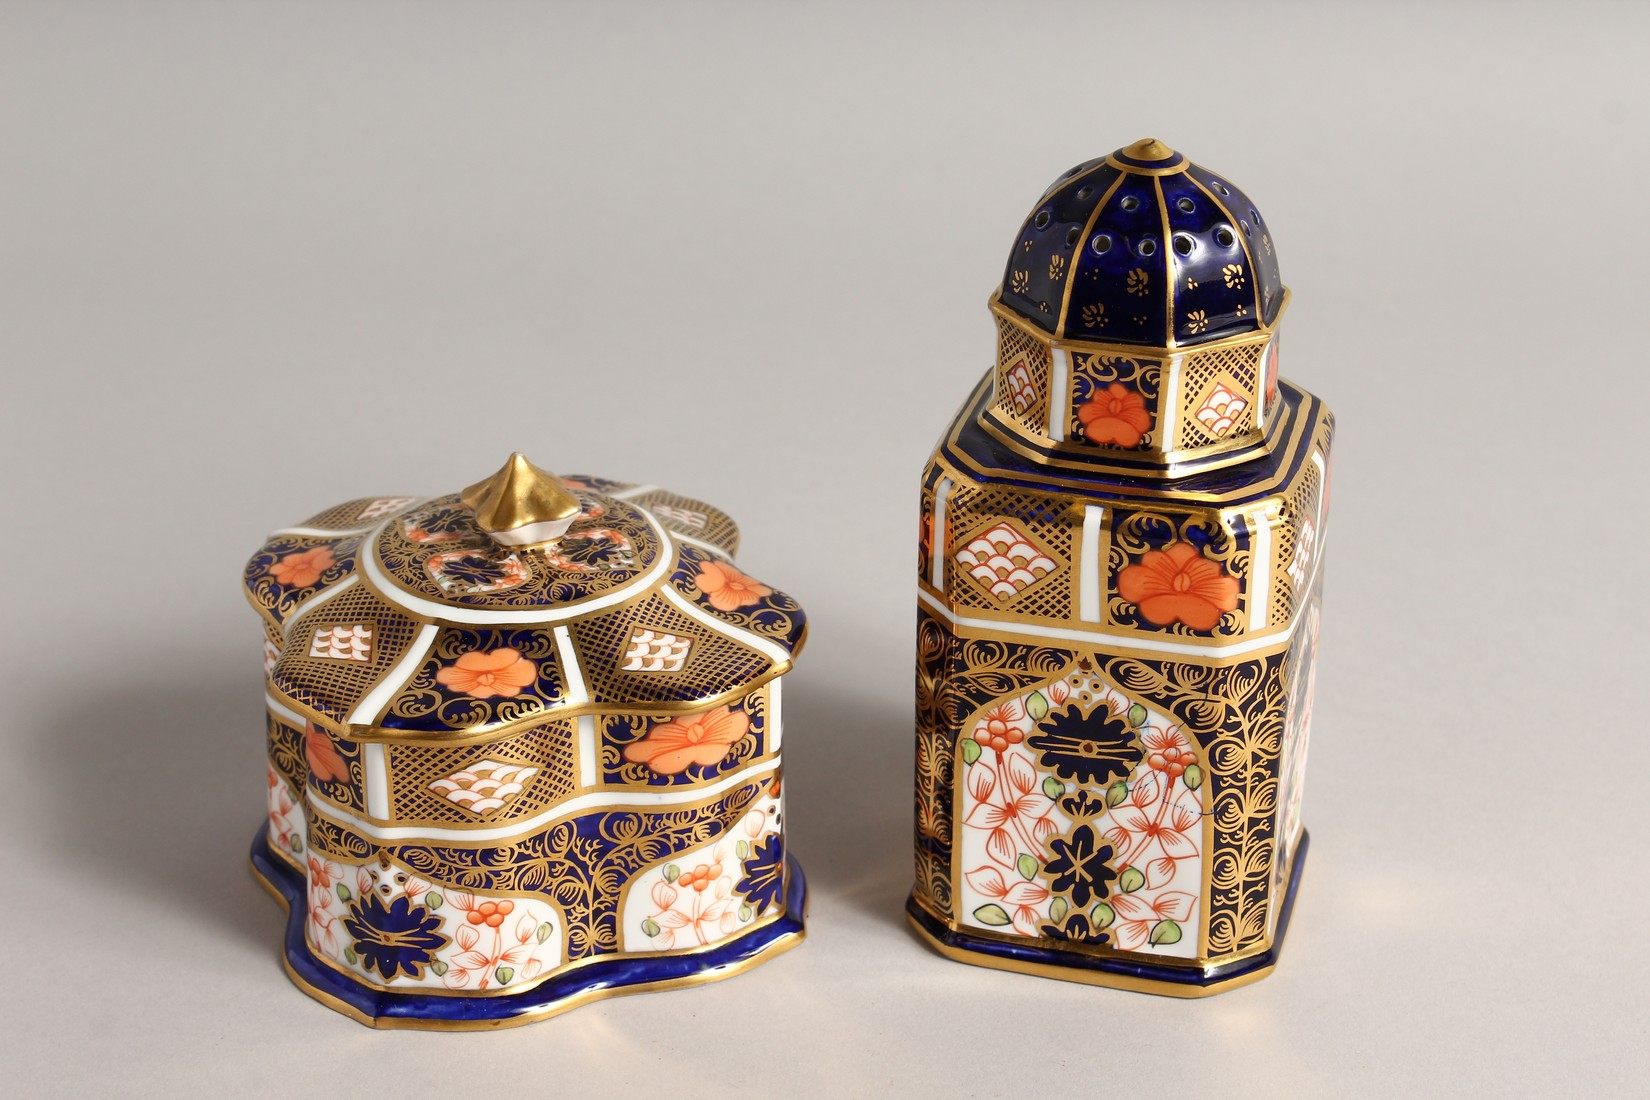 A ROYAL CROWN DERBY JAPAN PATTERN SQUARE SUGAR SIFTER, No. 1128. 6ins high and a SQUARE SUPERB BOX - Image 2 of 10